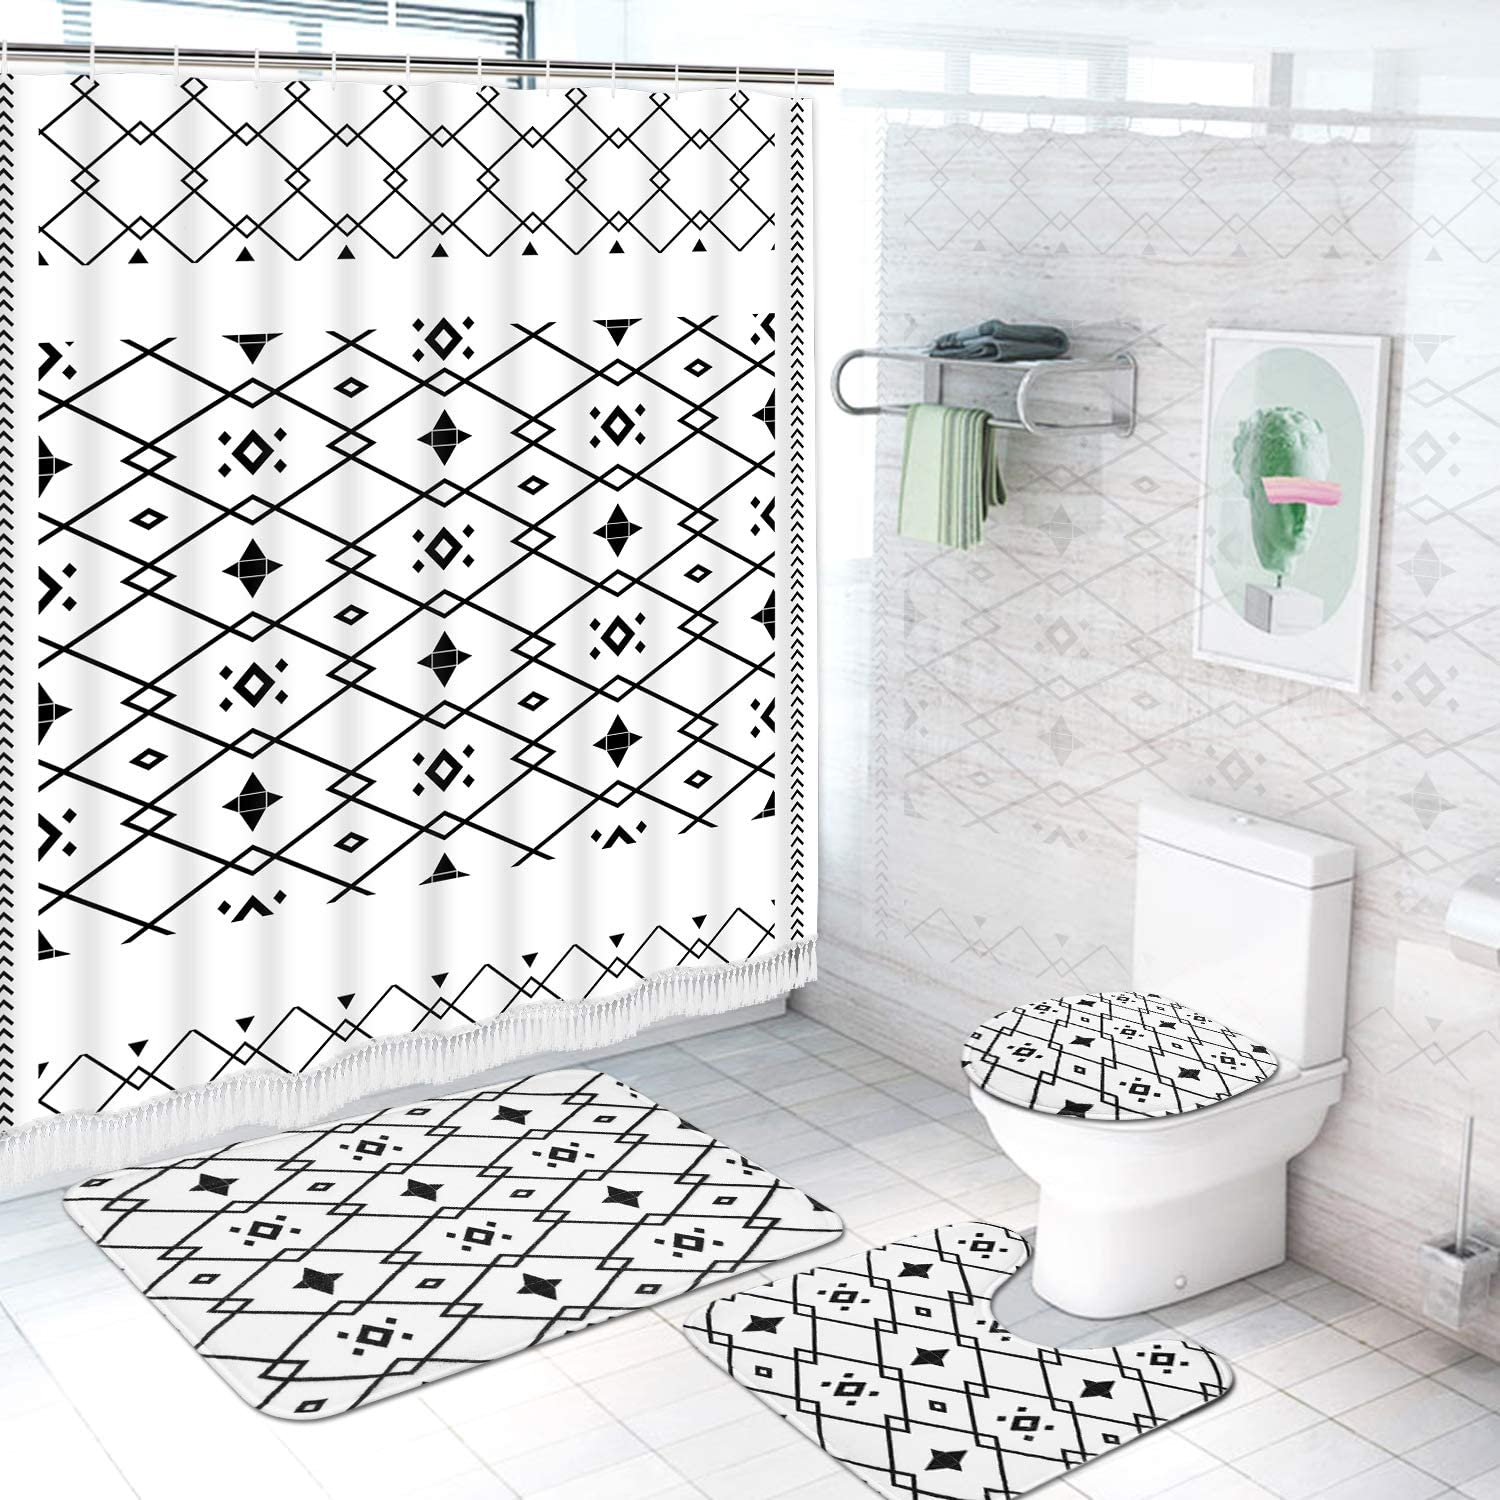 Ikfashoni 4 Pcs Black and White Tassel Shower Curtain Sets with Non-Slip Rug, Toilet Lid Cover and Bath Mat, Aztec Shower Curtains with 12 Hooks, Geometric Shower Curtain for Bathroom